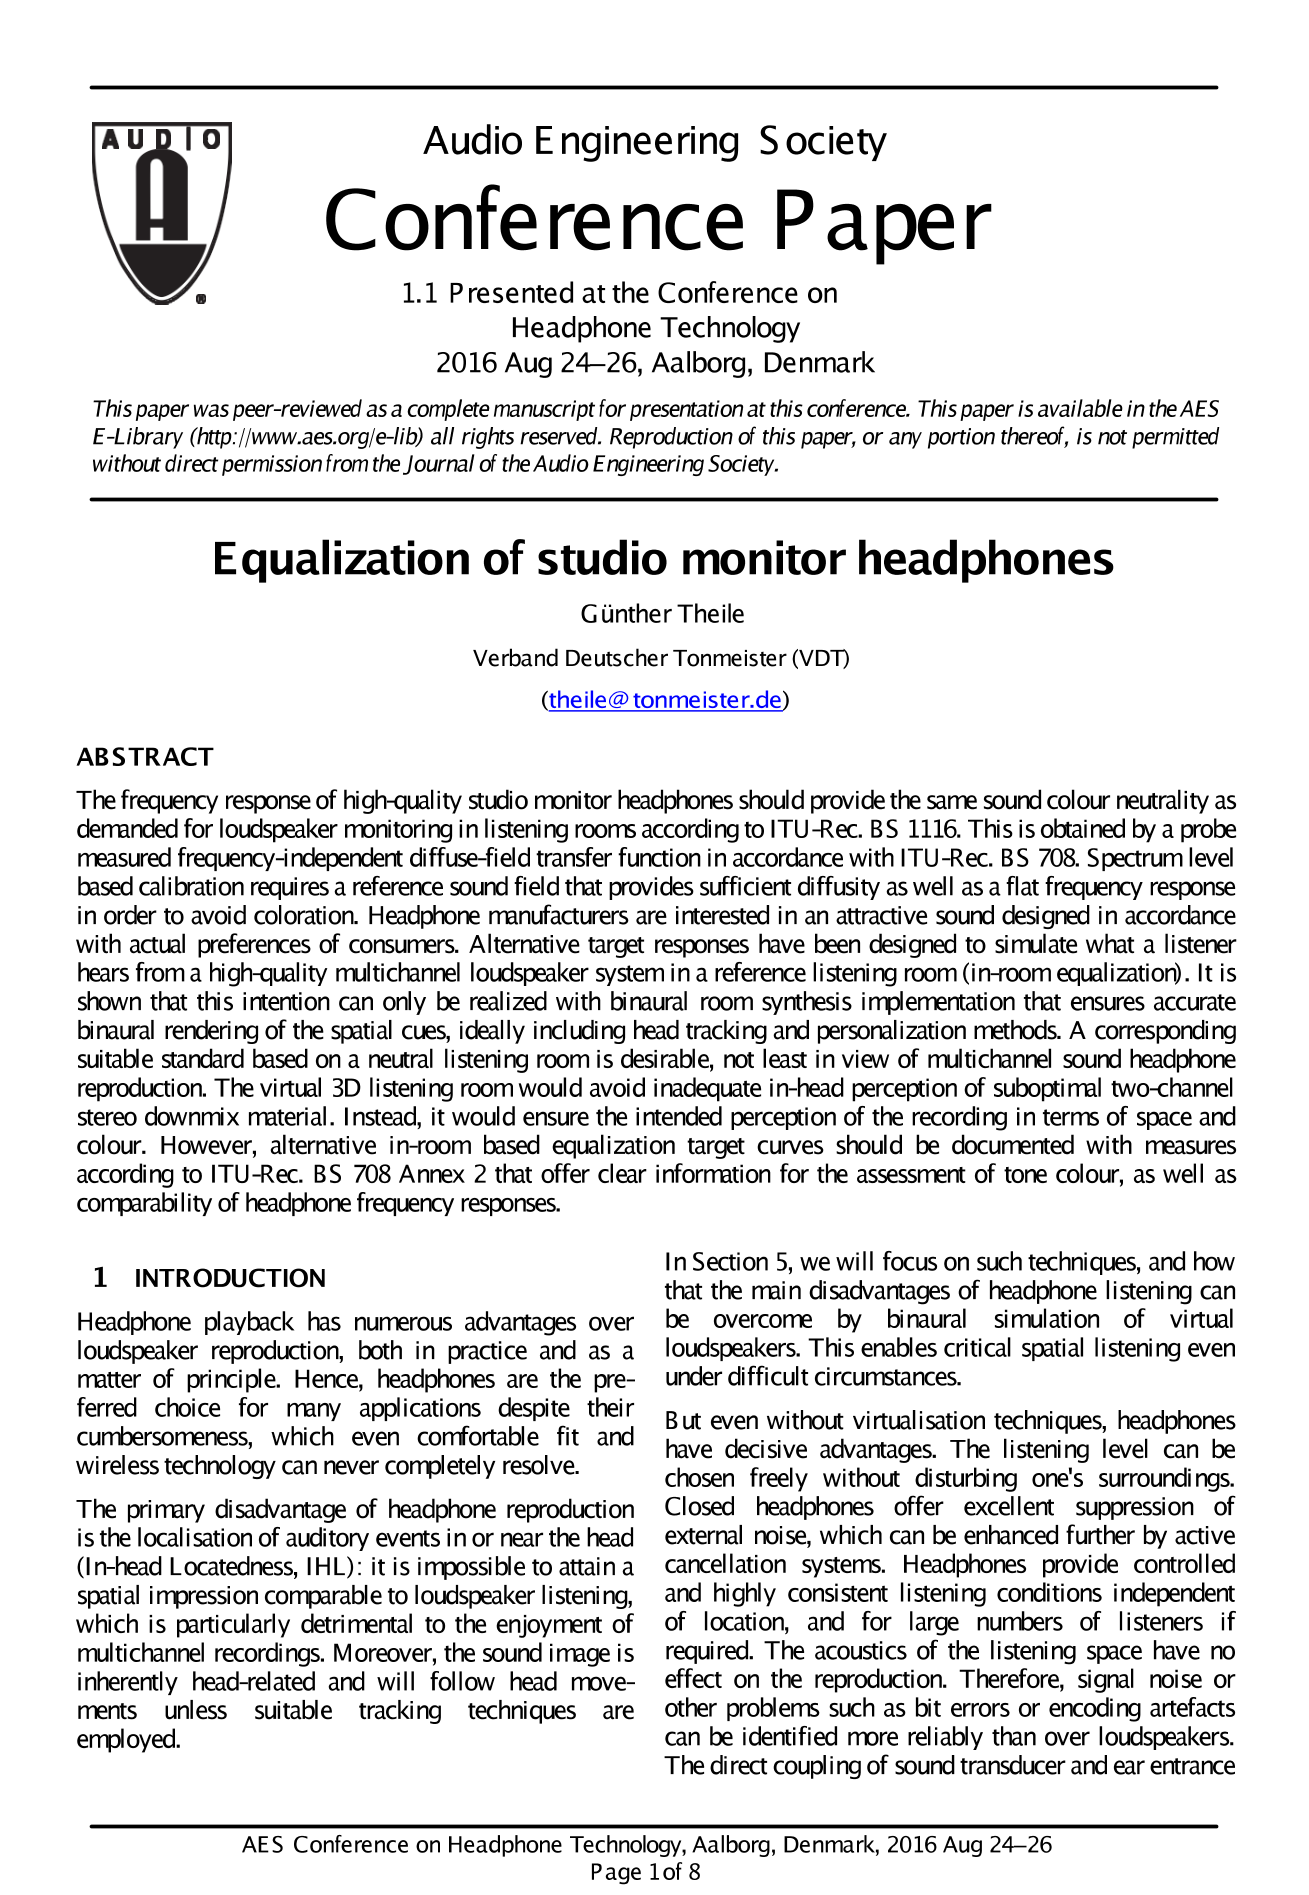 AES E-Library » Equalization of Studio Monitor Headphones